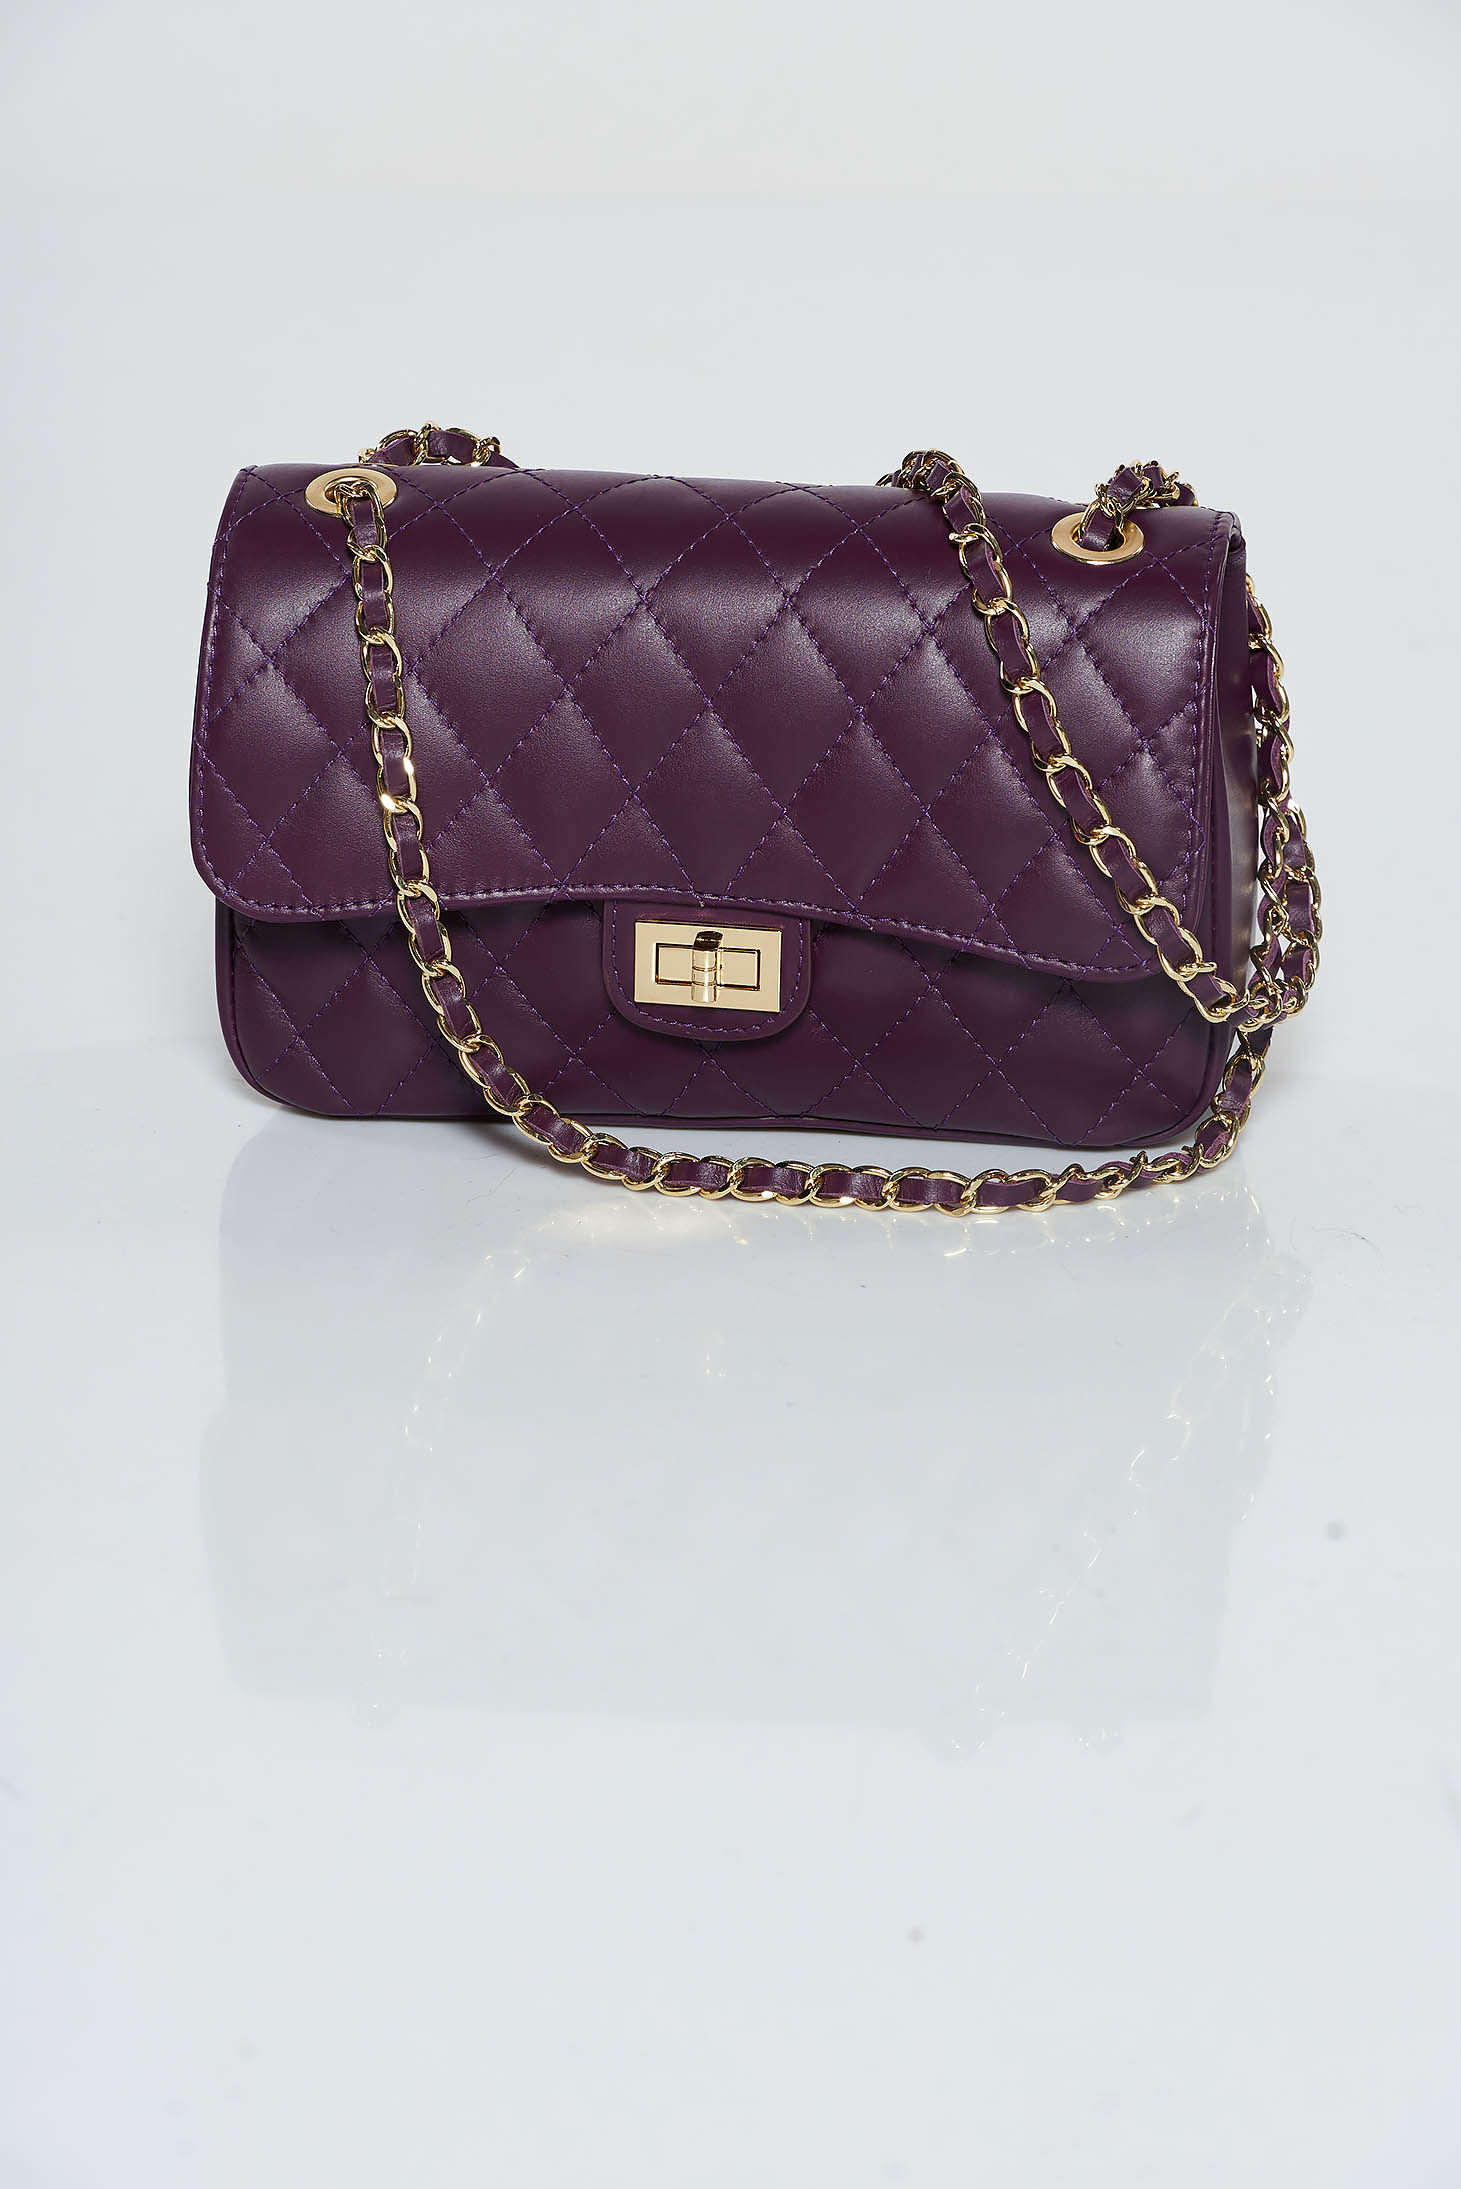 94c5a5162927 purple-bag-natural-leather-long-chain-handle-S037716-9-394120.jpg